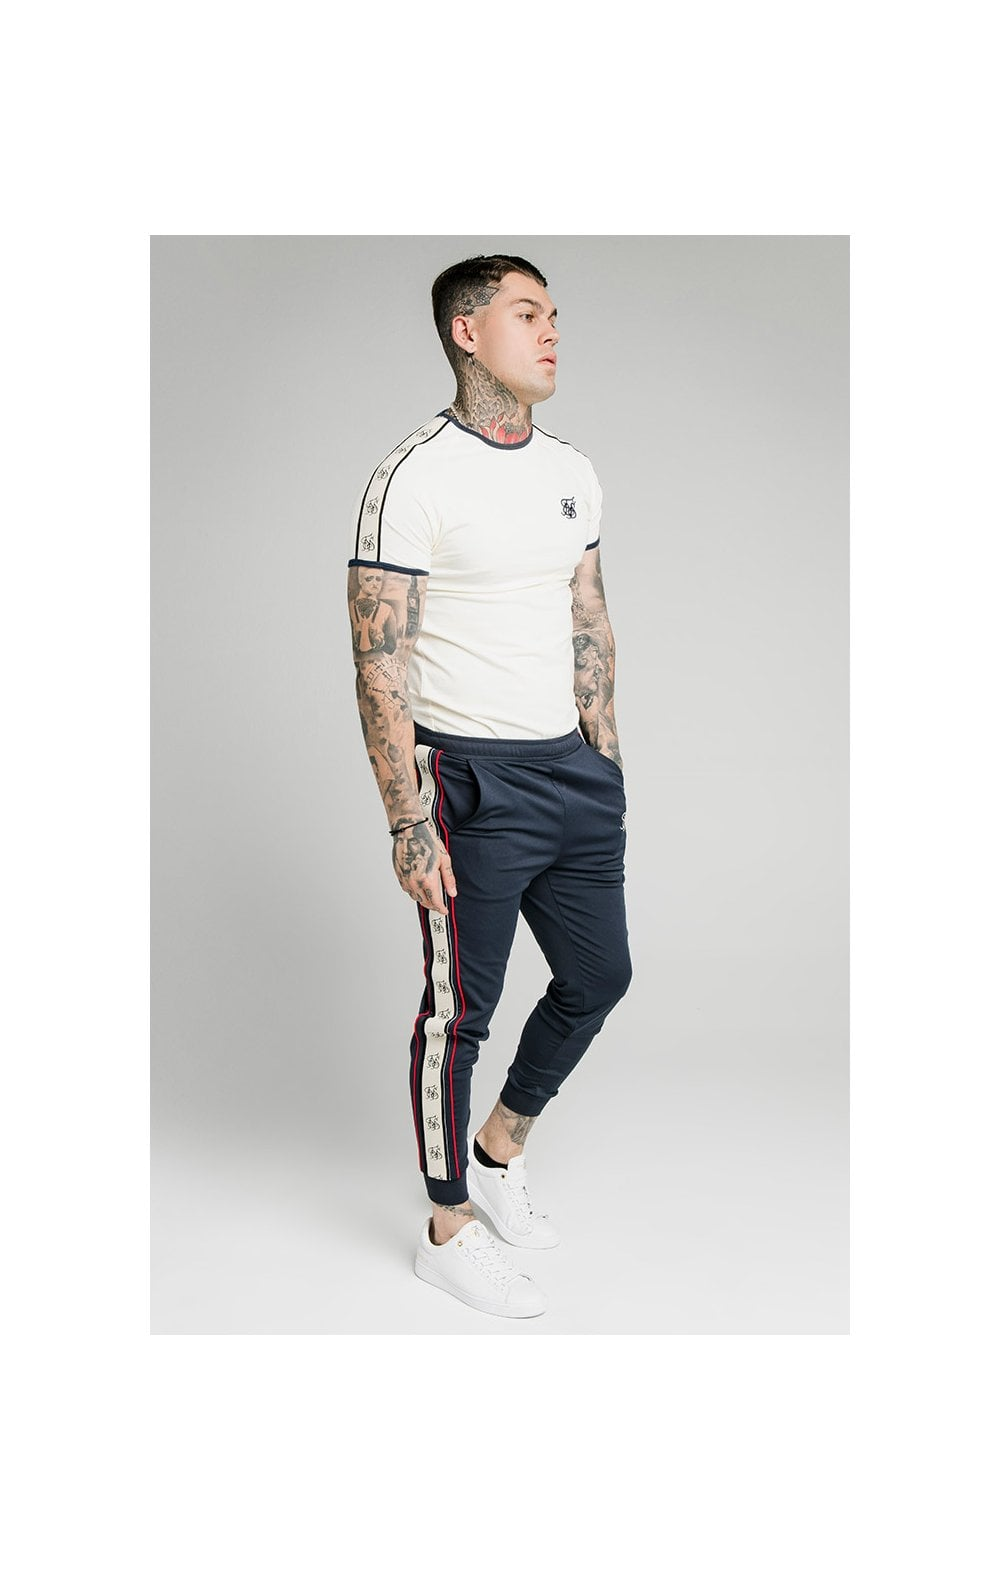 SikSilk S/S Premium Ringer Gym Tee - Off White (4)